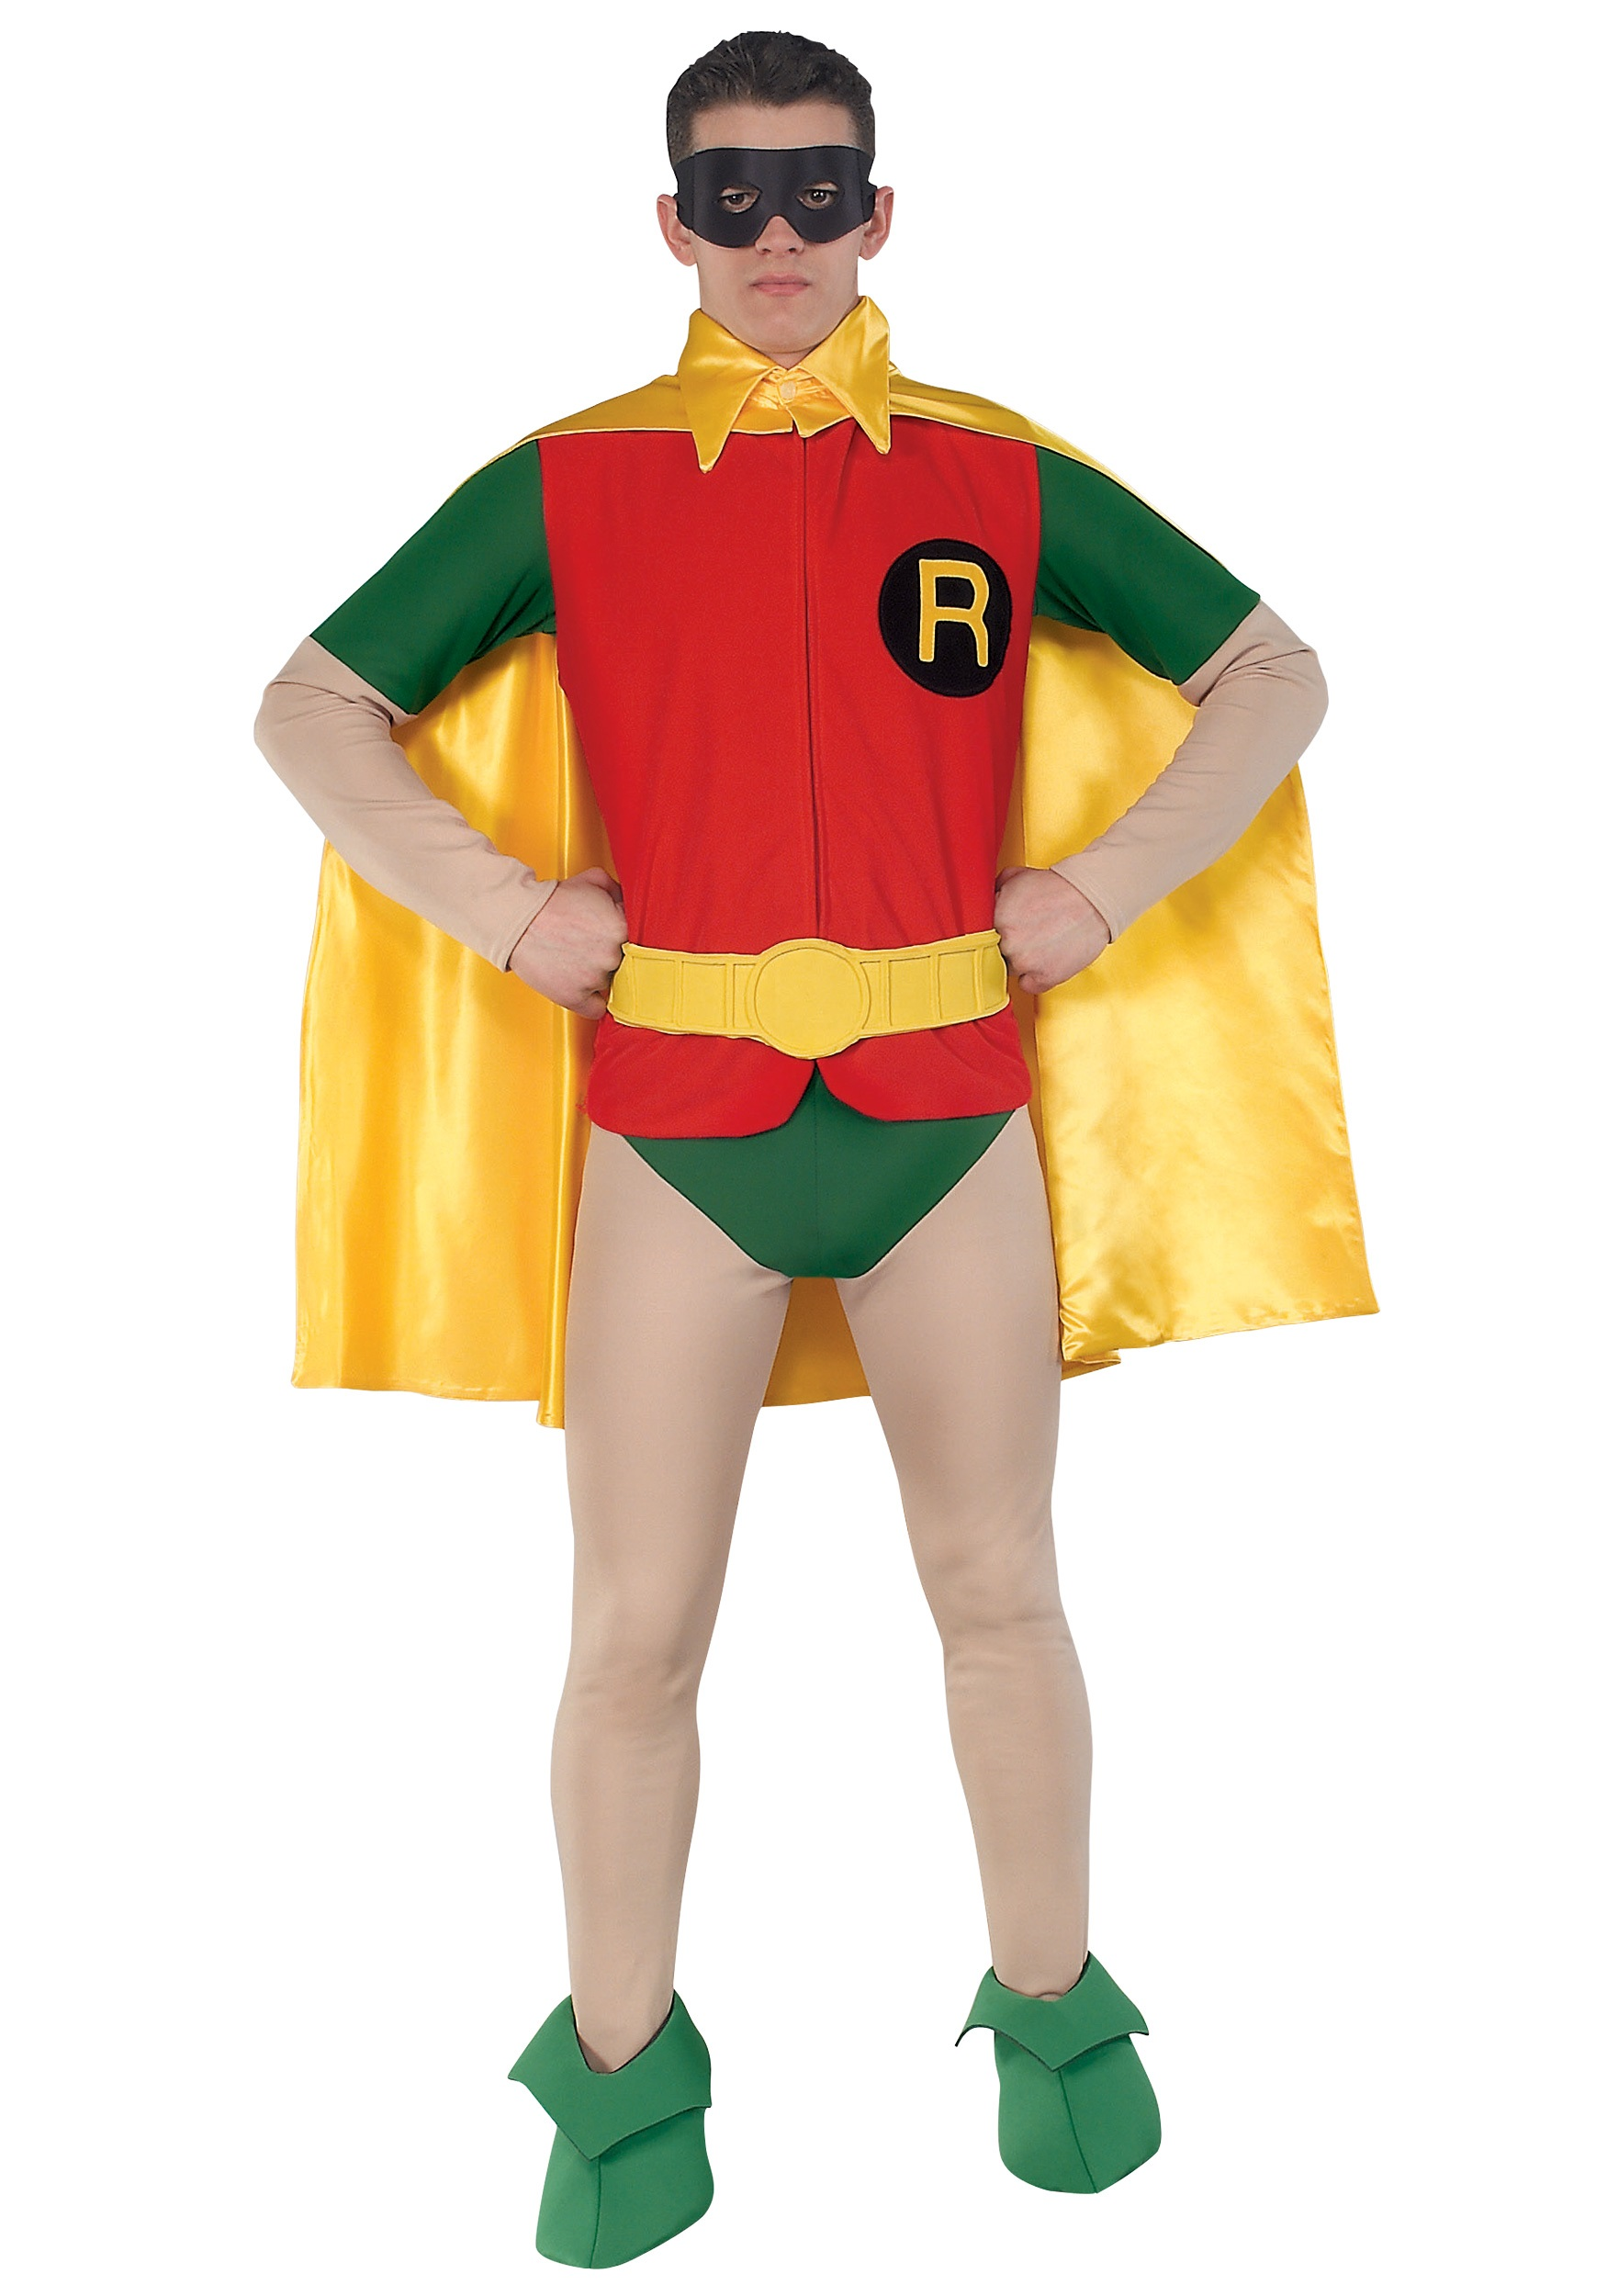 Robin Costumes - Adult, Toddler, Girl Robin Halloween Costumes